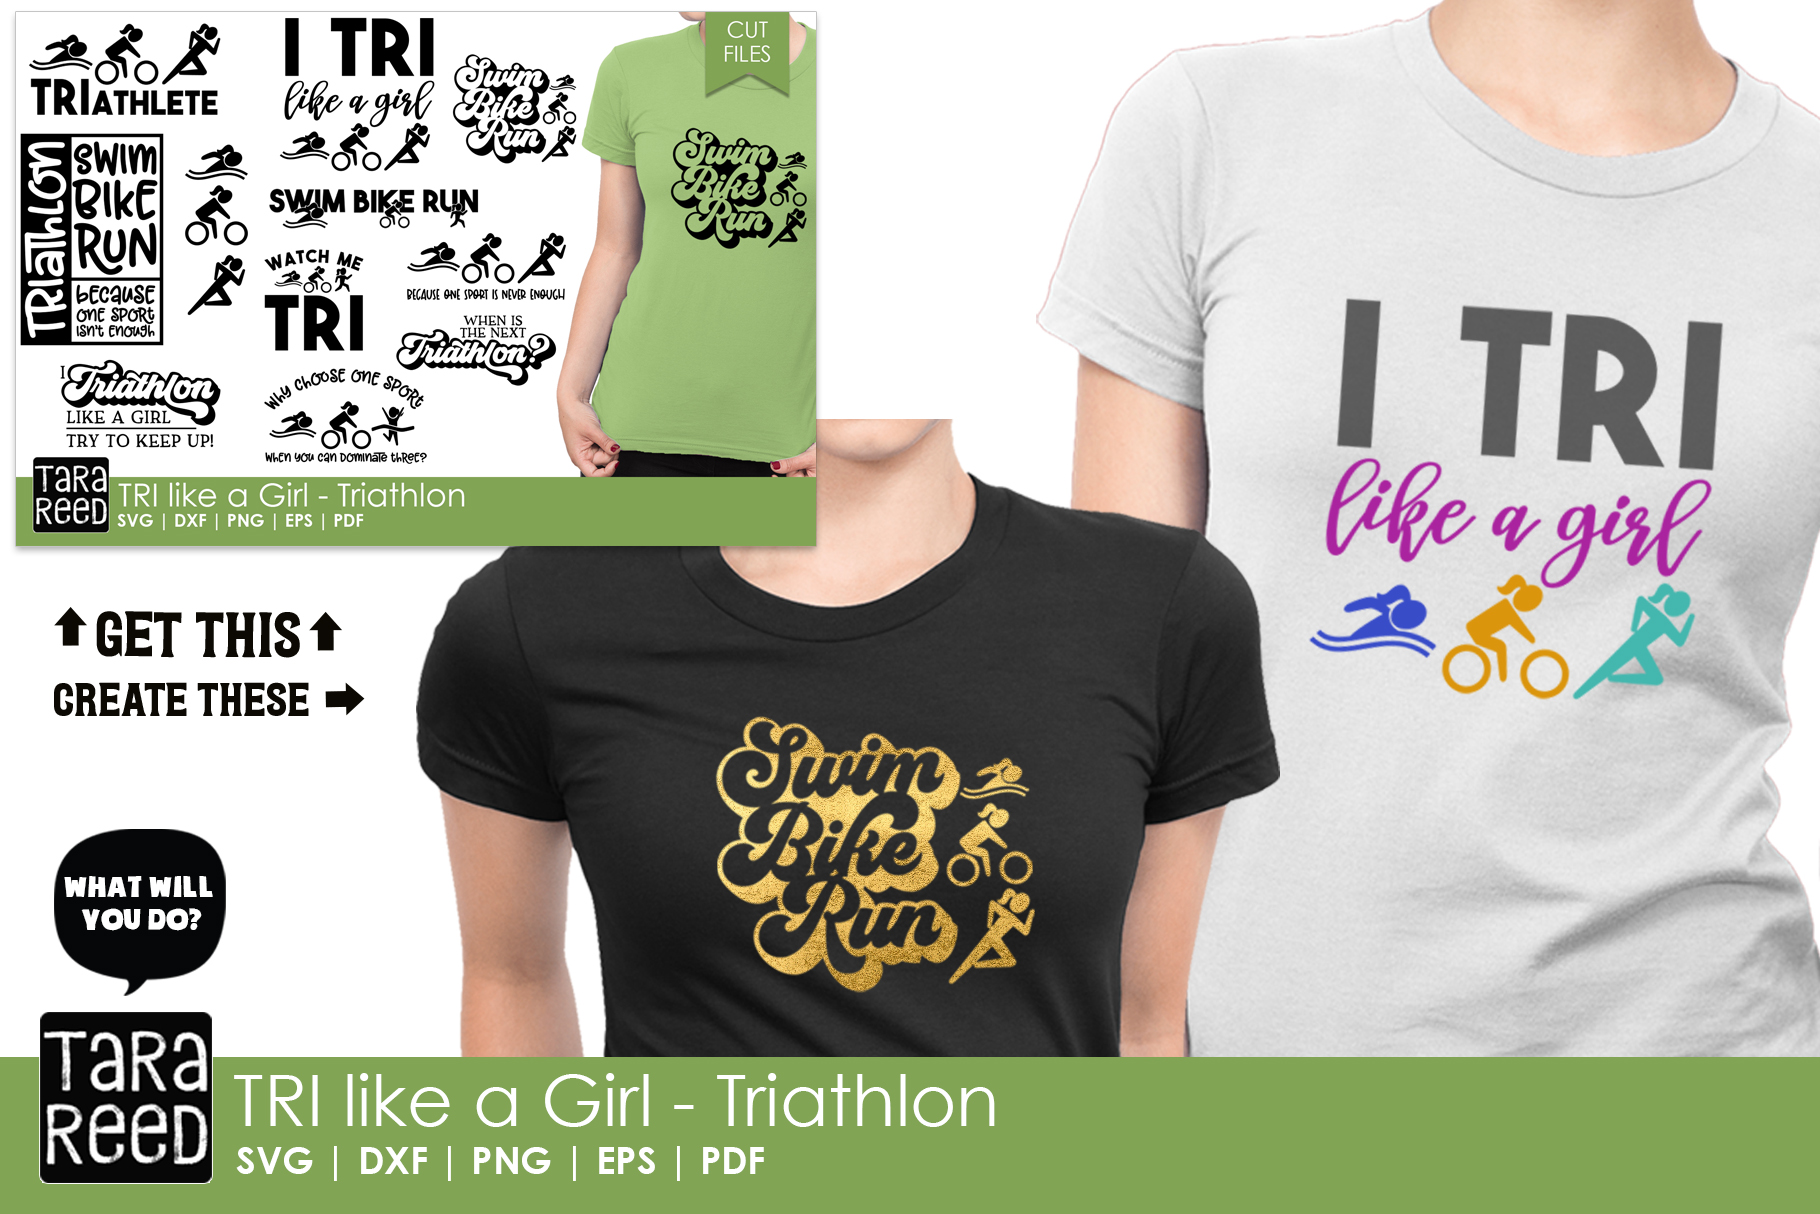 TRI like a Girl - Triathlon SVG and Cut Files for Crafters example image 2